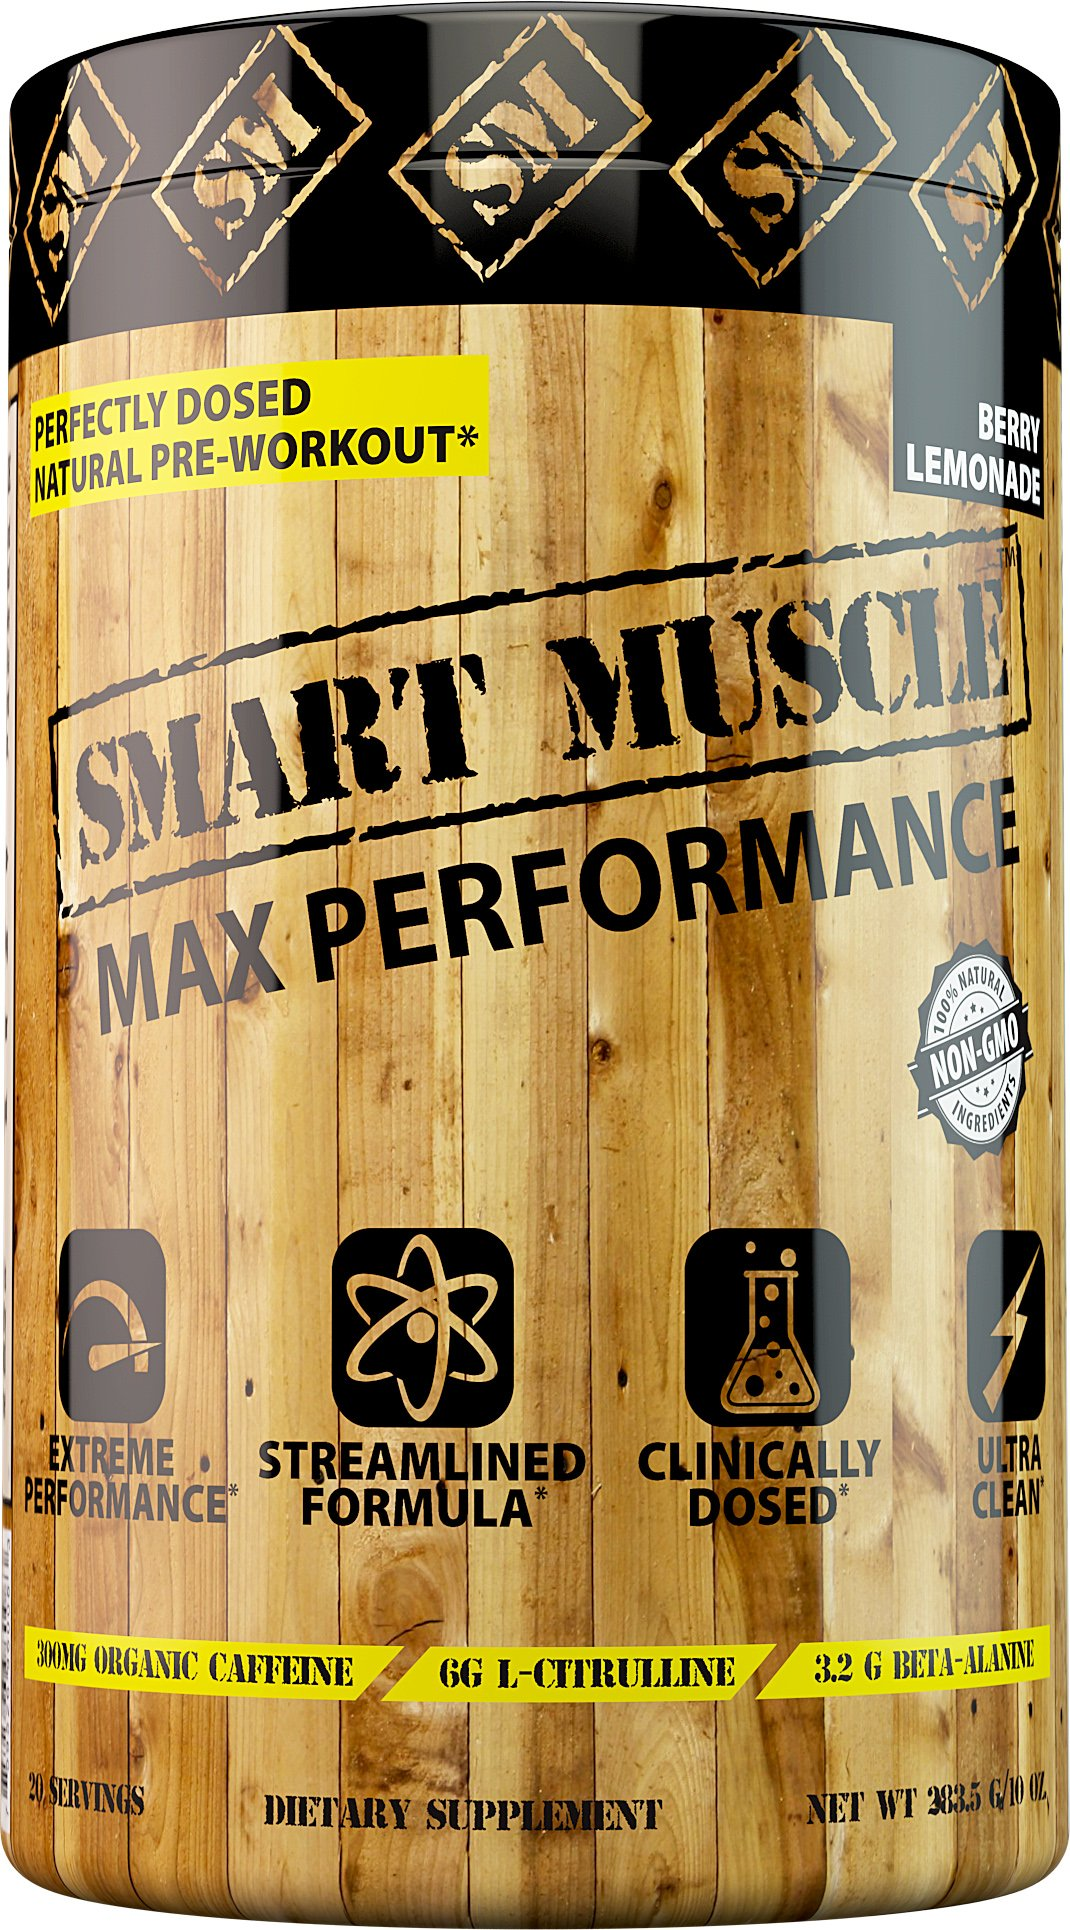 Smart Muscle MAX Performance - CLINICALLY DOSED Natural PREWORKOUT - NONGMO Powerhouse with PurCaf Organic Caffeine is The cleanest Most Effective Training Supplement Ever Made or Your Money Back.